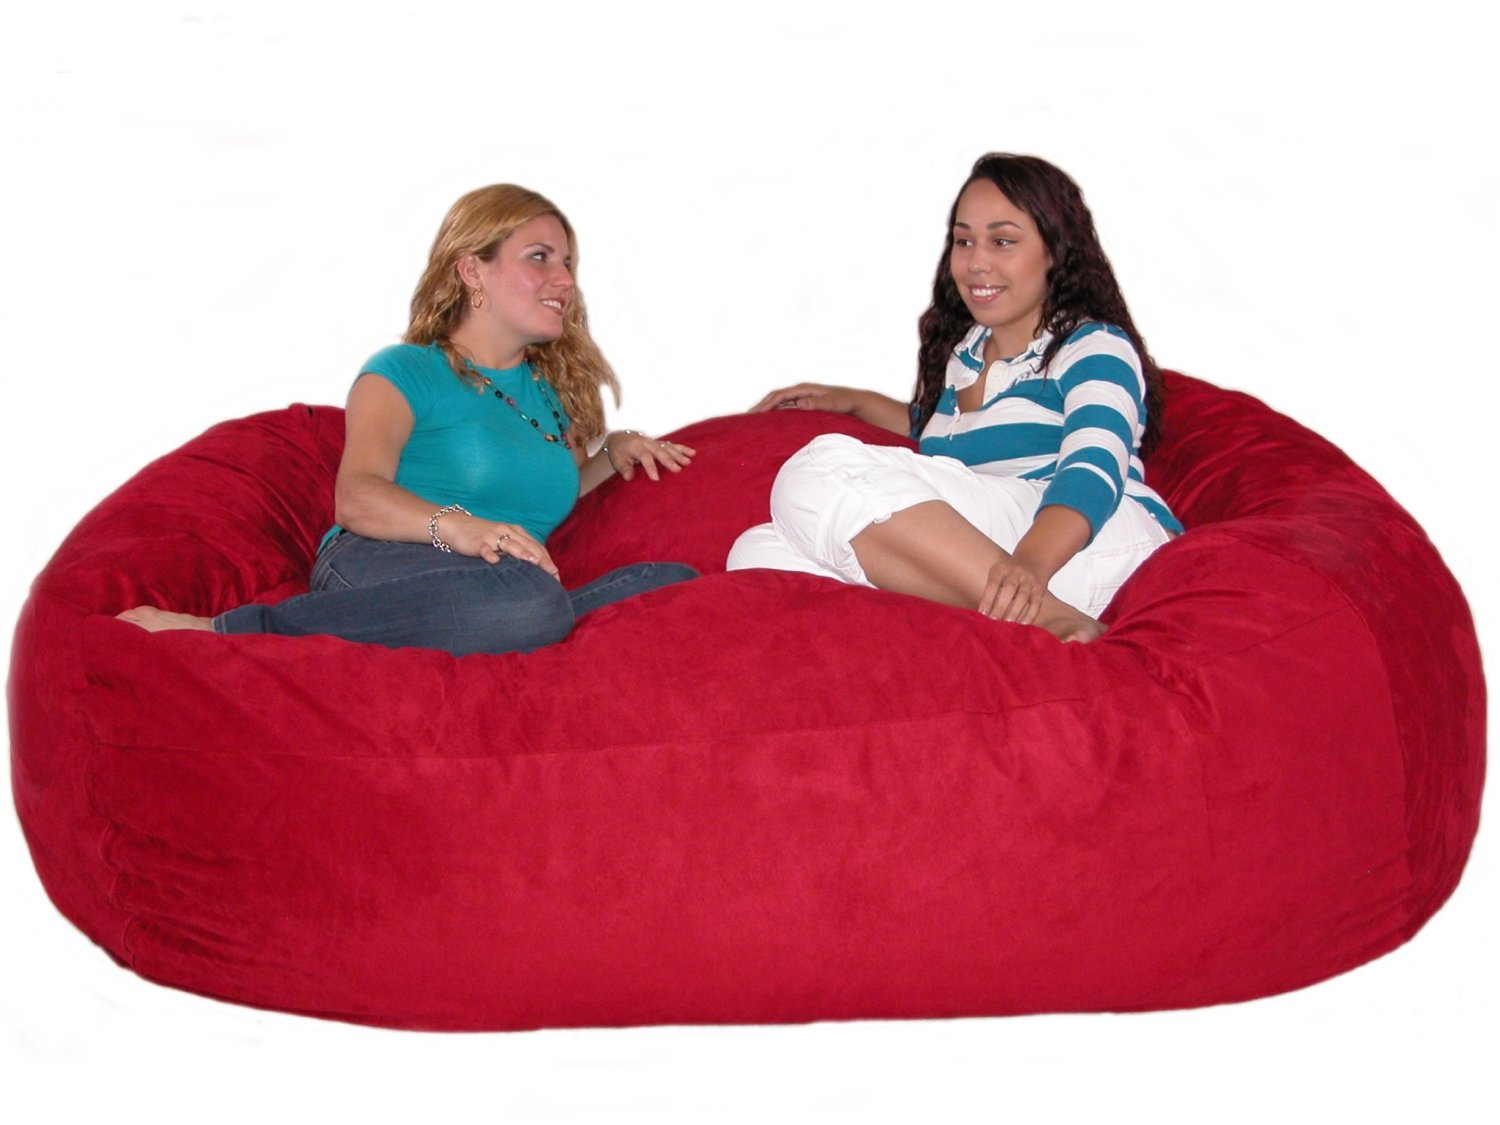 Love Making Chair Images Office Customer Chairs Add An Awesome Bean Bag To Your Home Ideas For